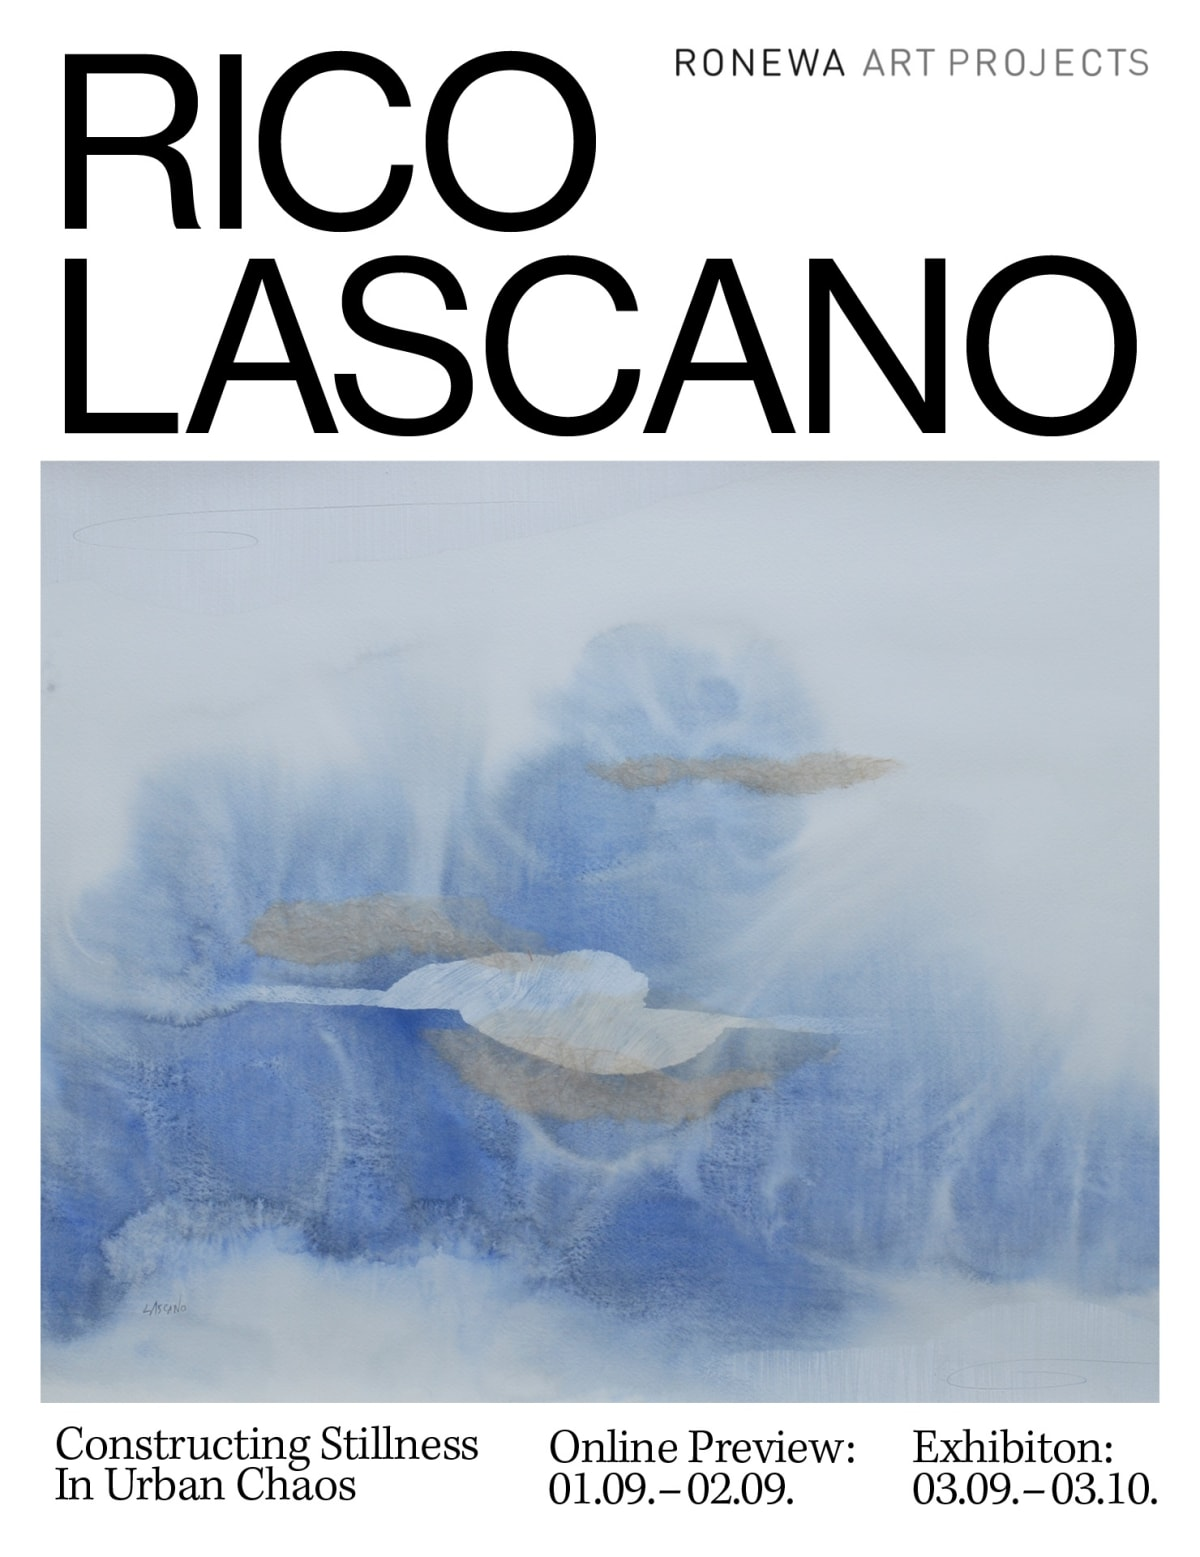 Rico Lascano online exhibition flyer ronewa art projects